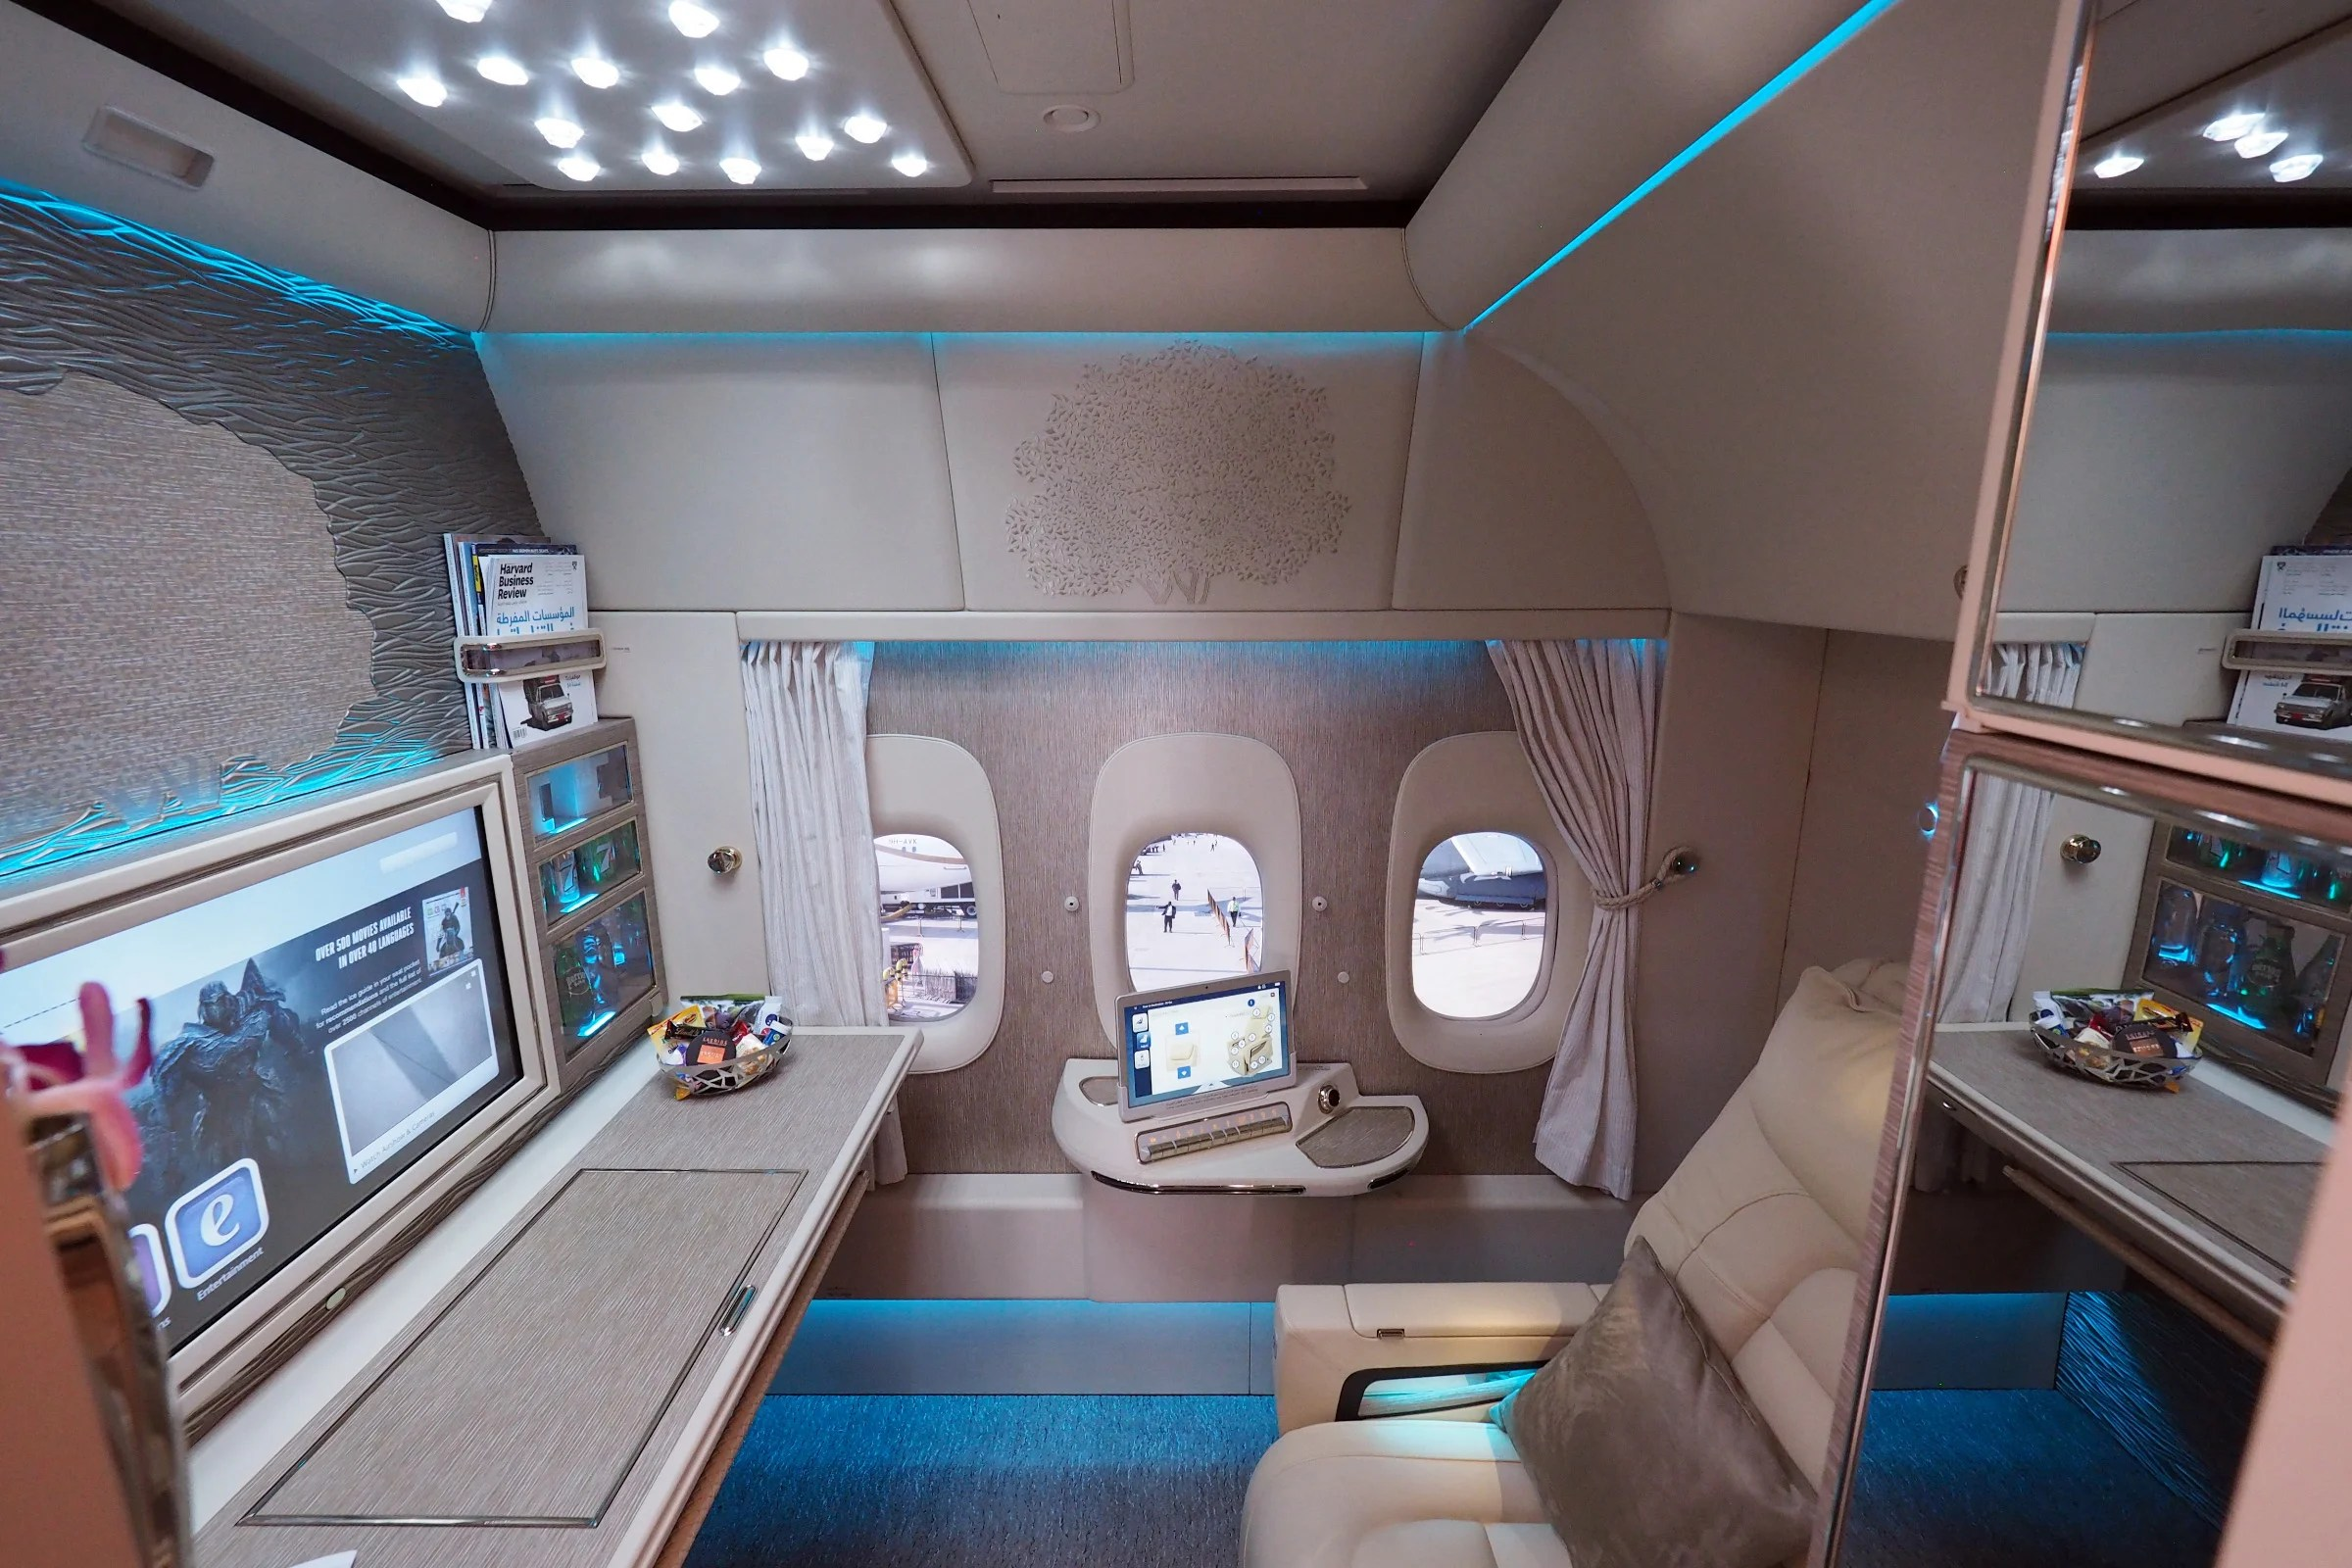 How I Scored A Deal On Emirates New First Class Suite